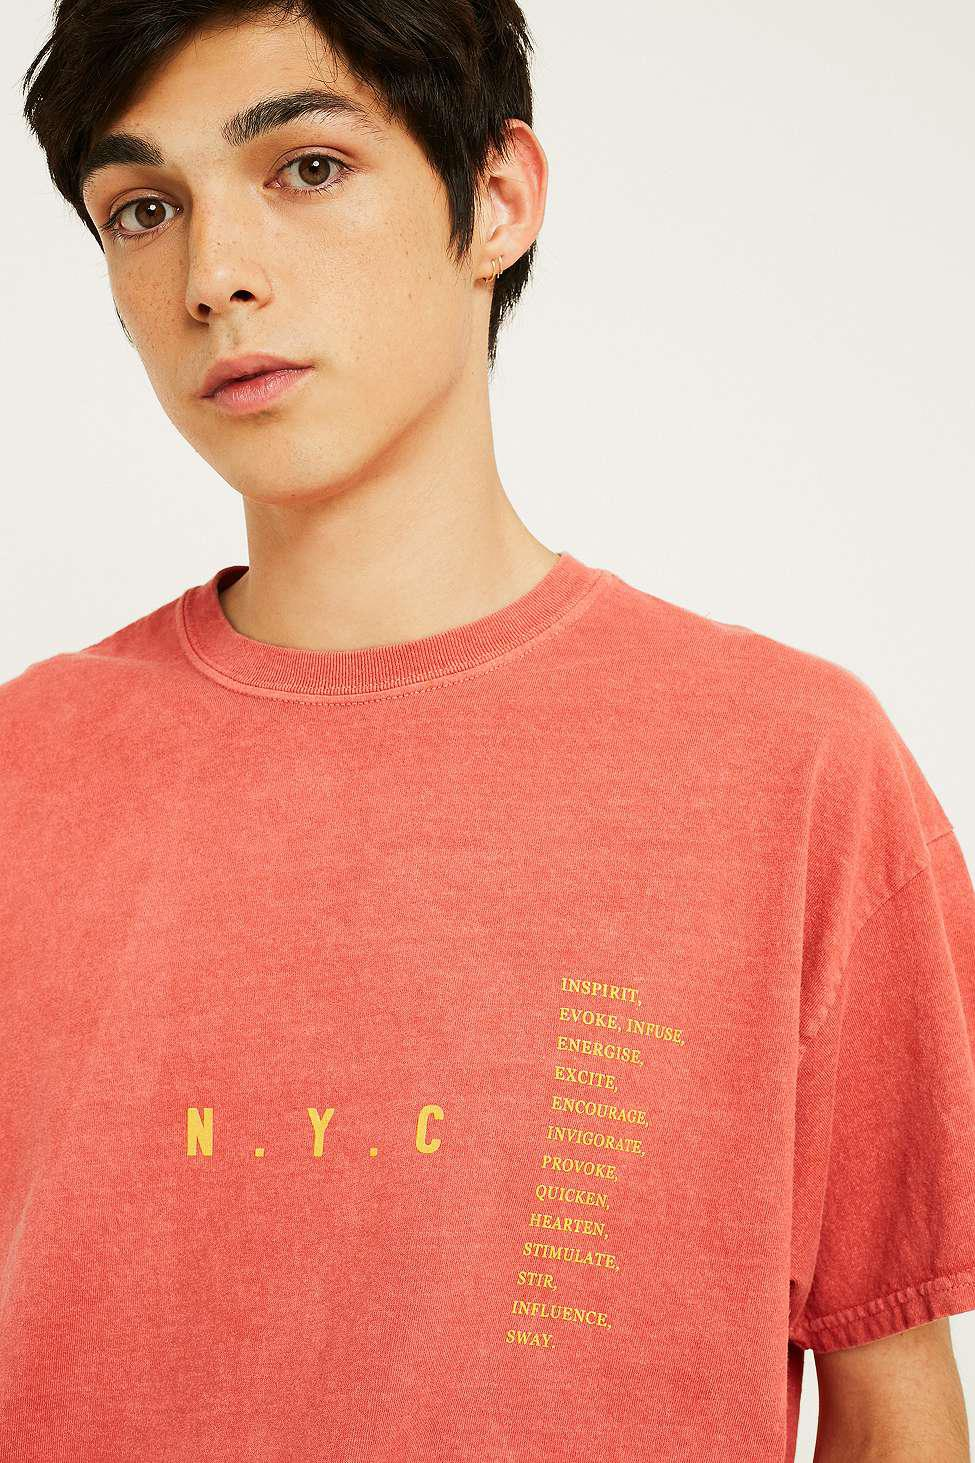 Urban Outfitters Uo Nyc Dictionary Red T-shirt - Mens Xs in Red for ... 39c49f6cbfc